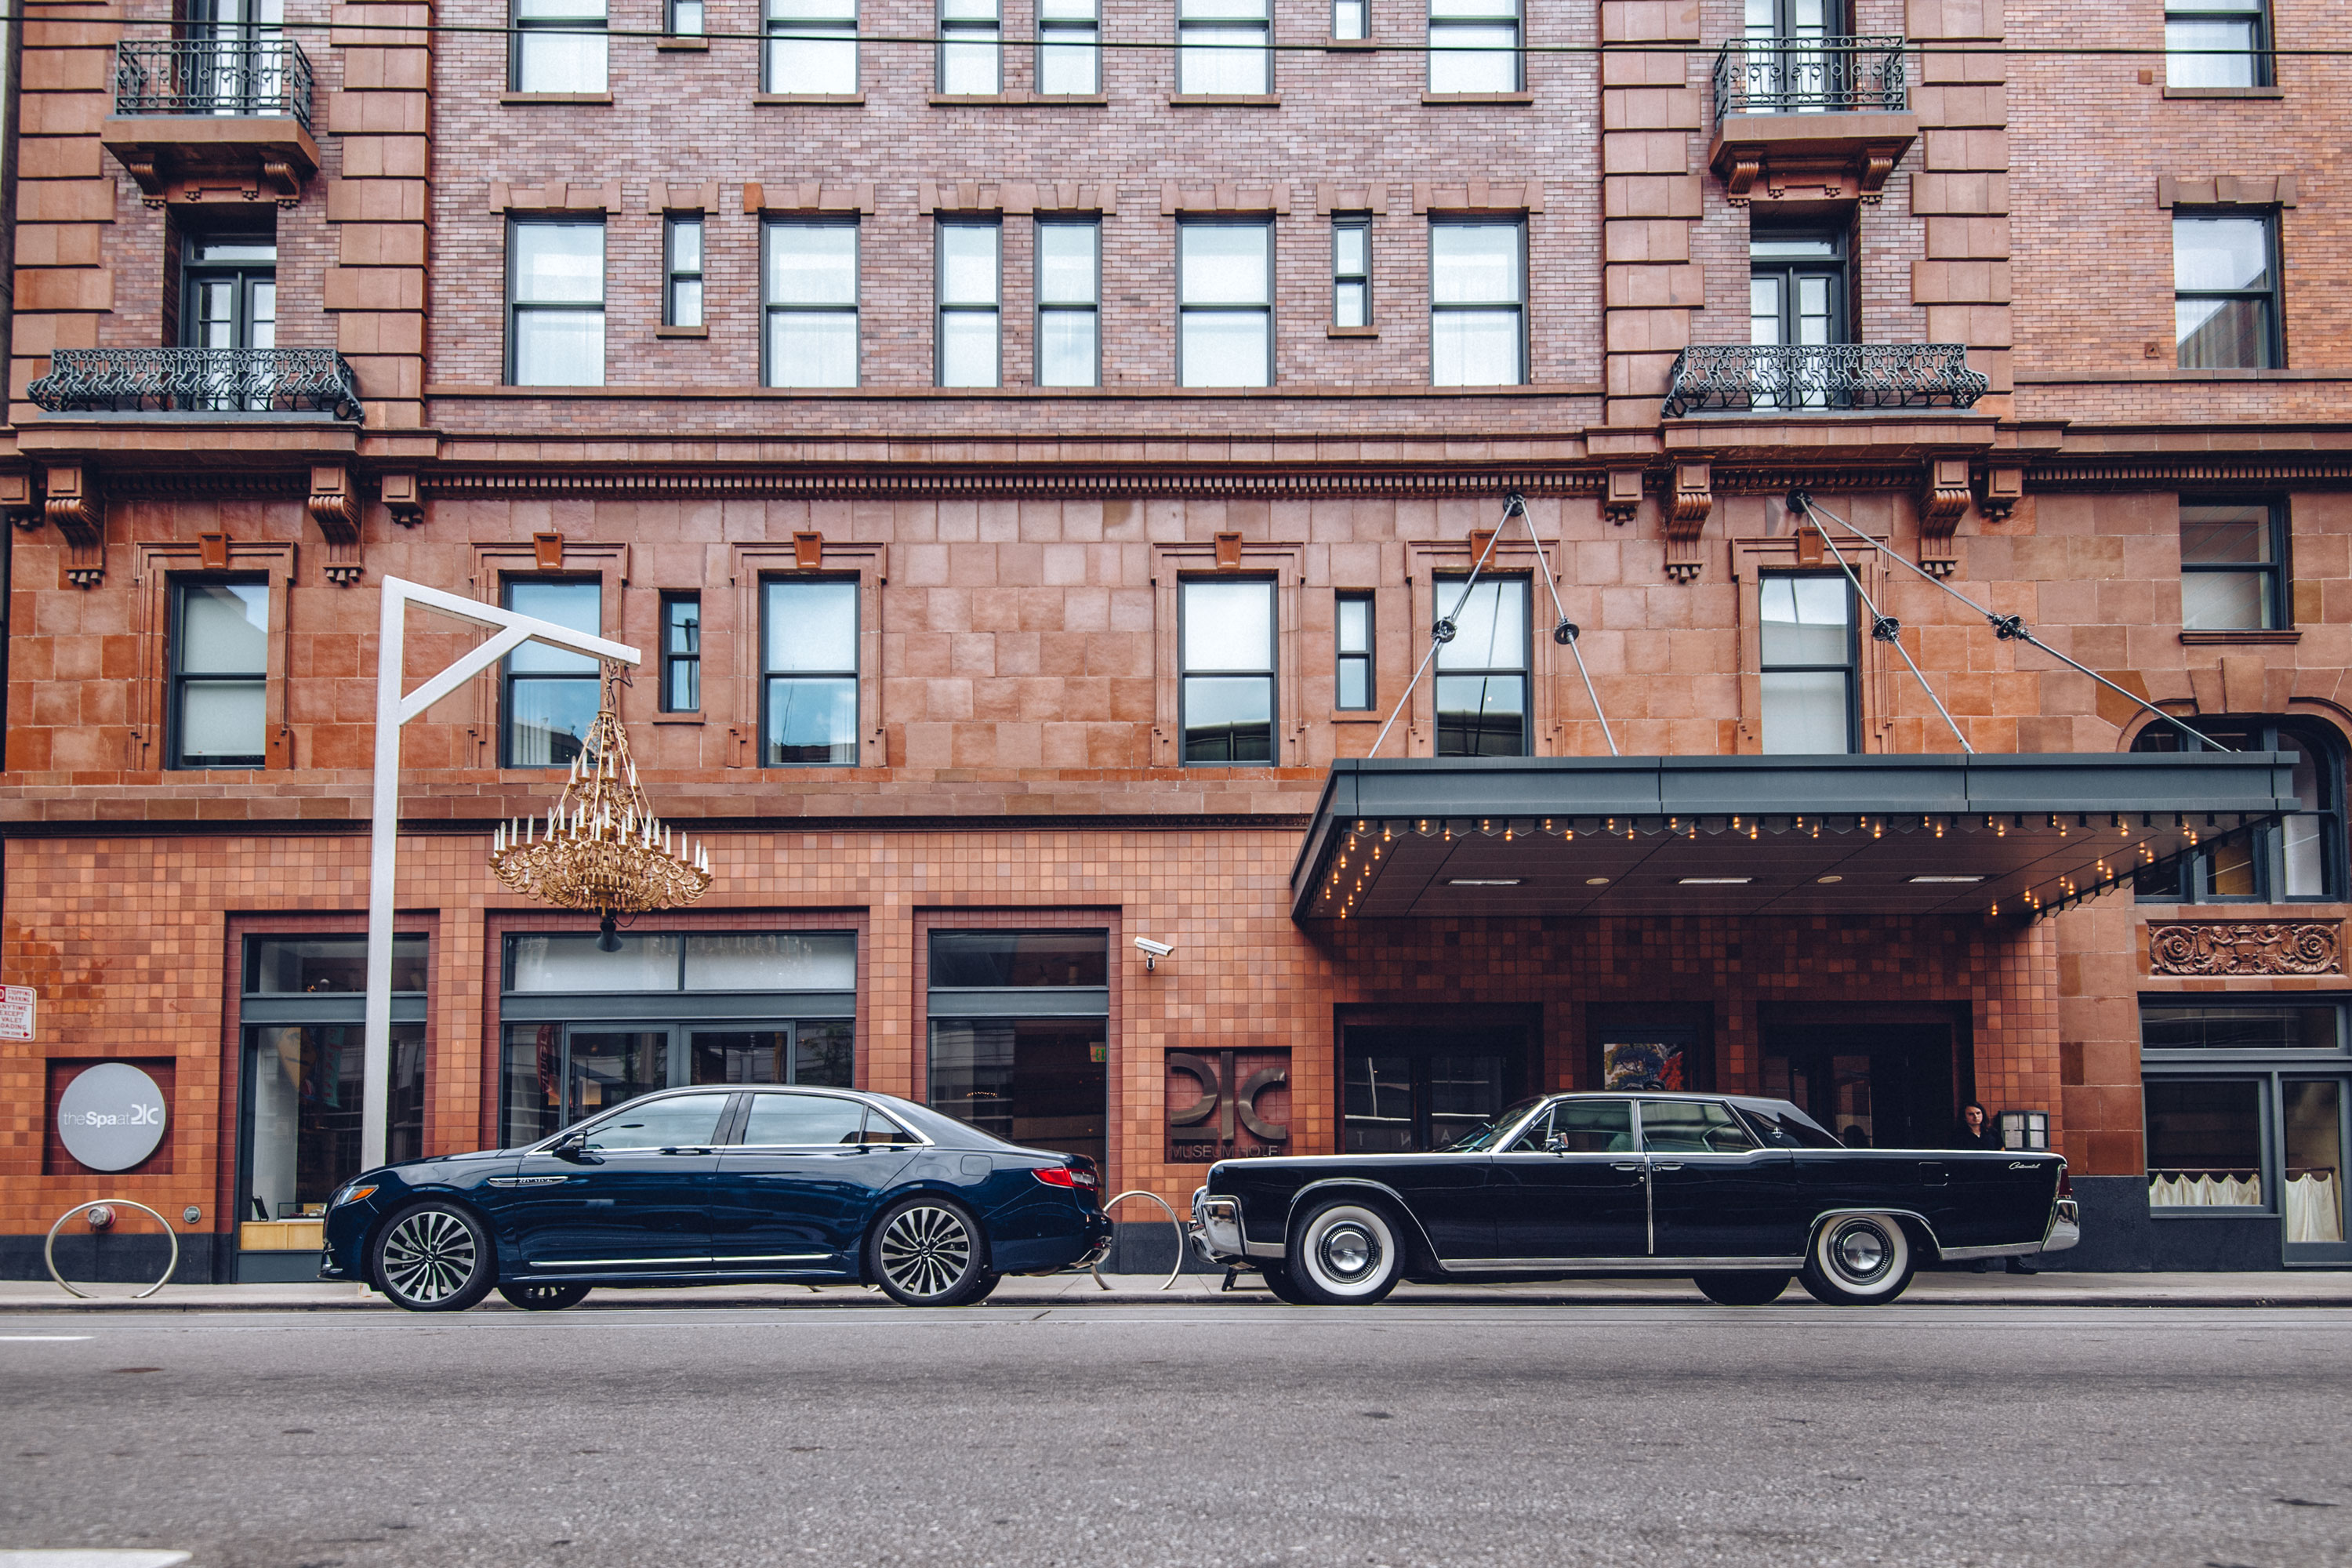 American luxury has changed almost as much as America itself in the half-century separating these two Continentals, but a bold, bluff presence that conveys status endures.